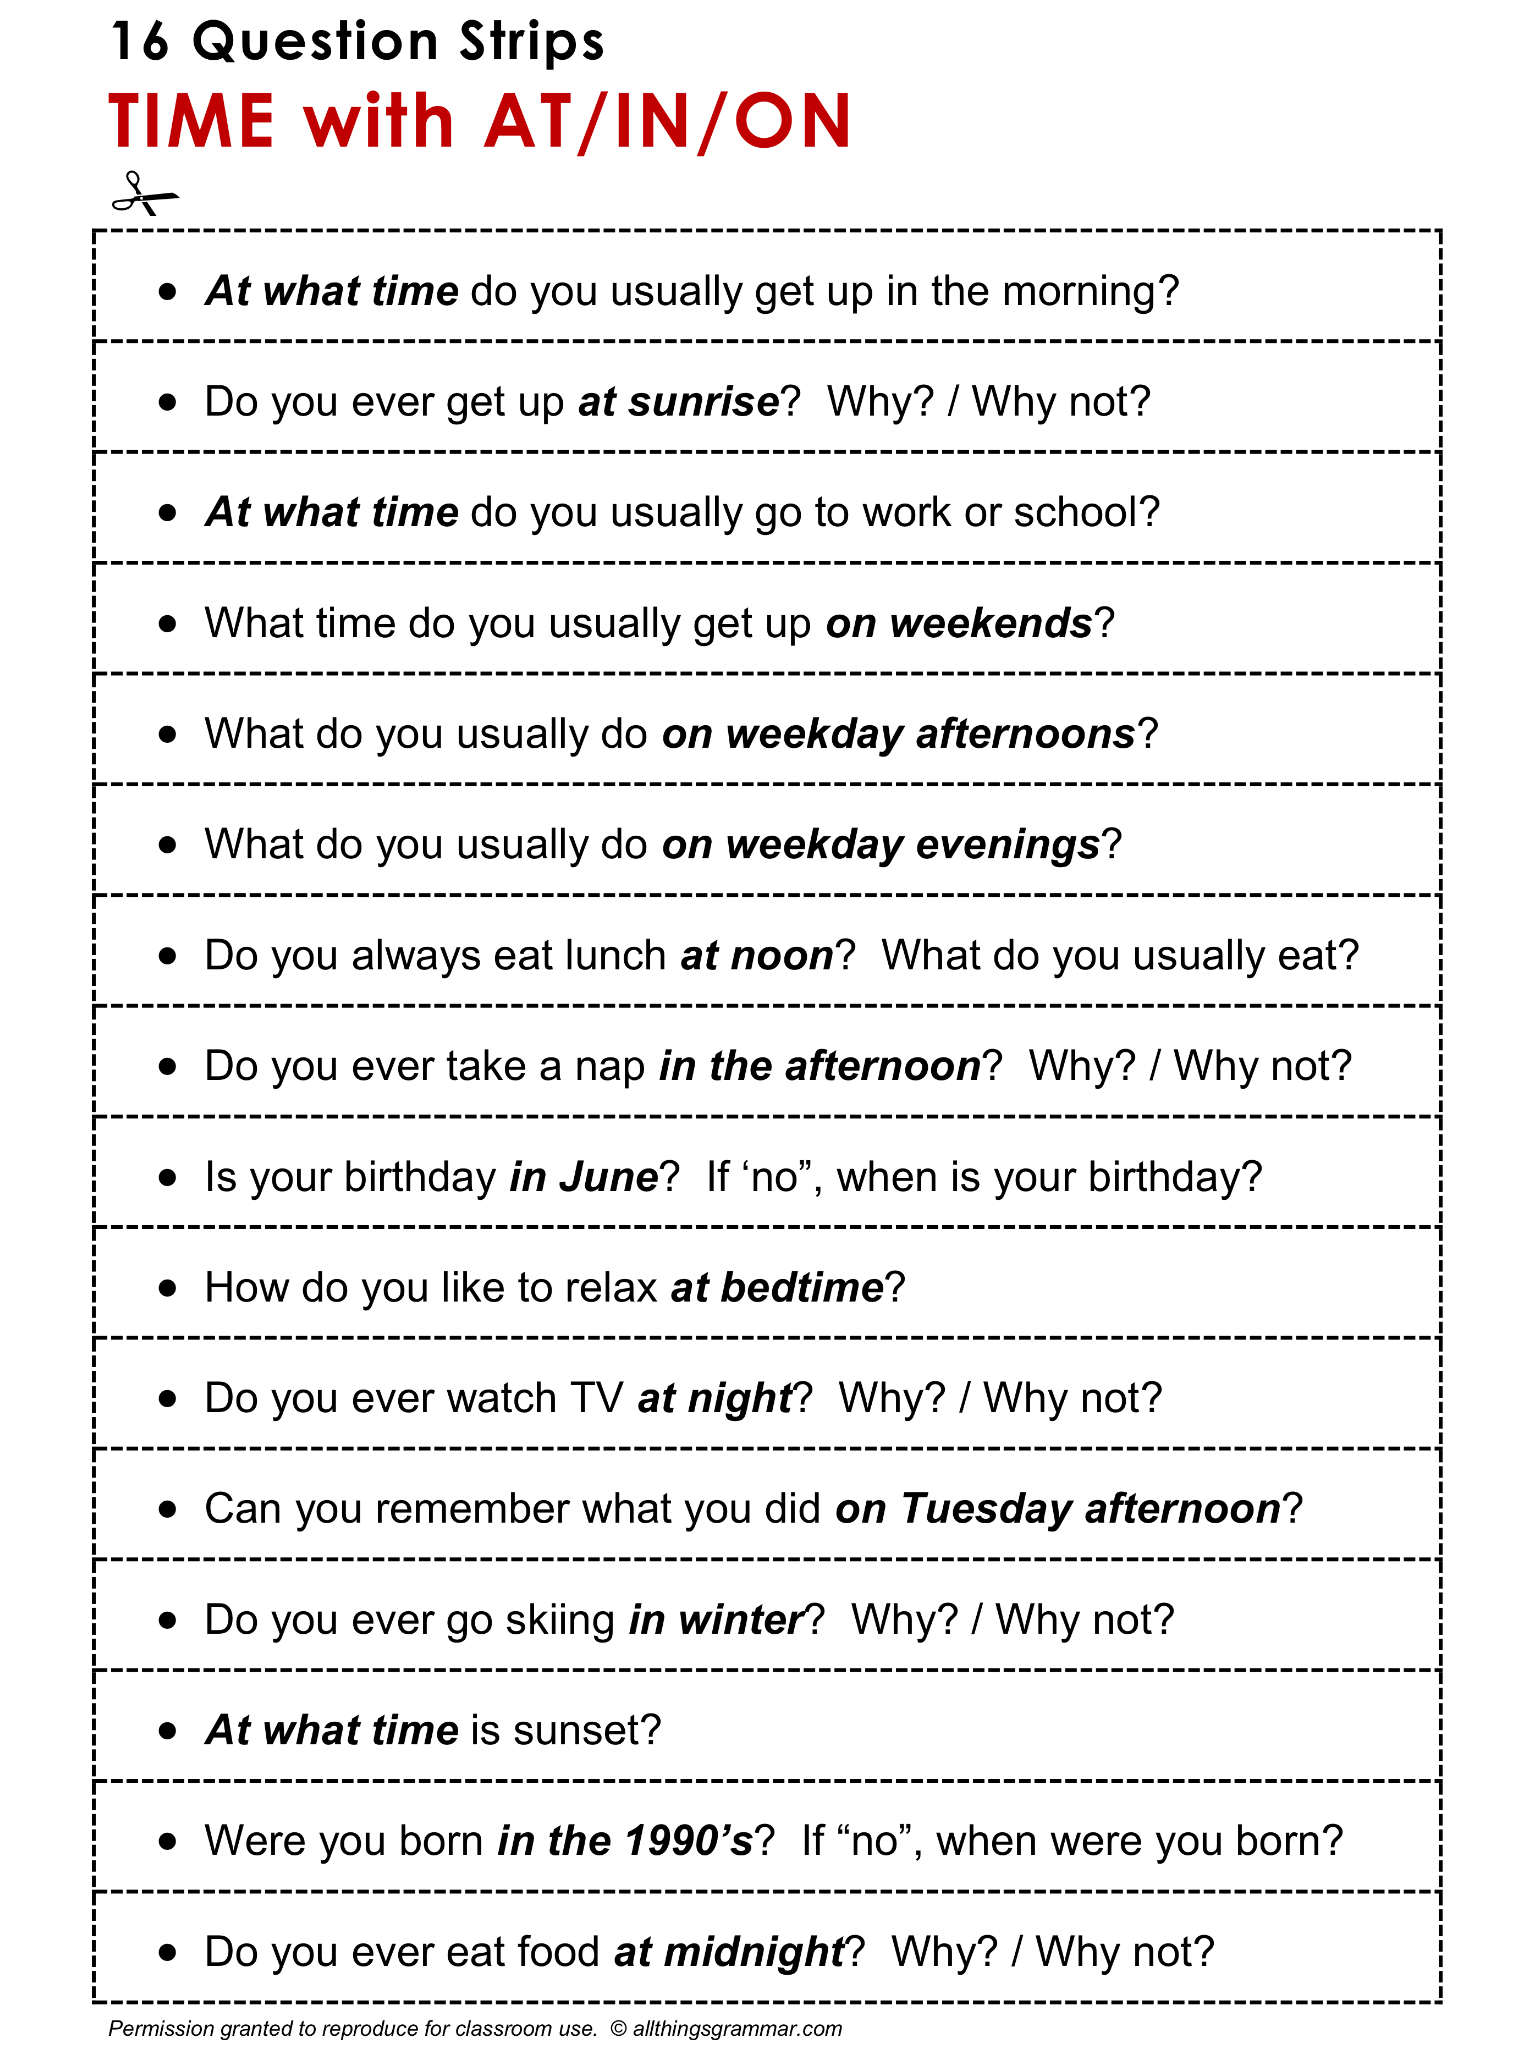 English Grammar Discussion Practice Prepositions Of Time At In On 16 Question Strips Http Ww Learn English Words English Prepositions Teaching English [ 2048 x 1536 Pixel ]